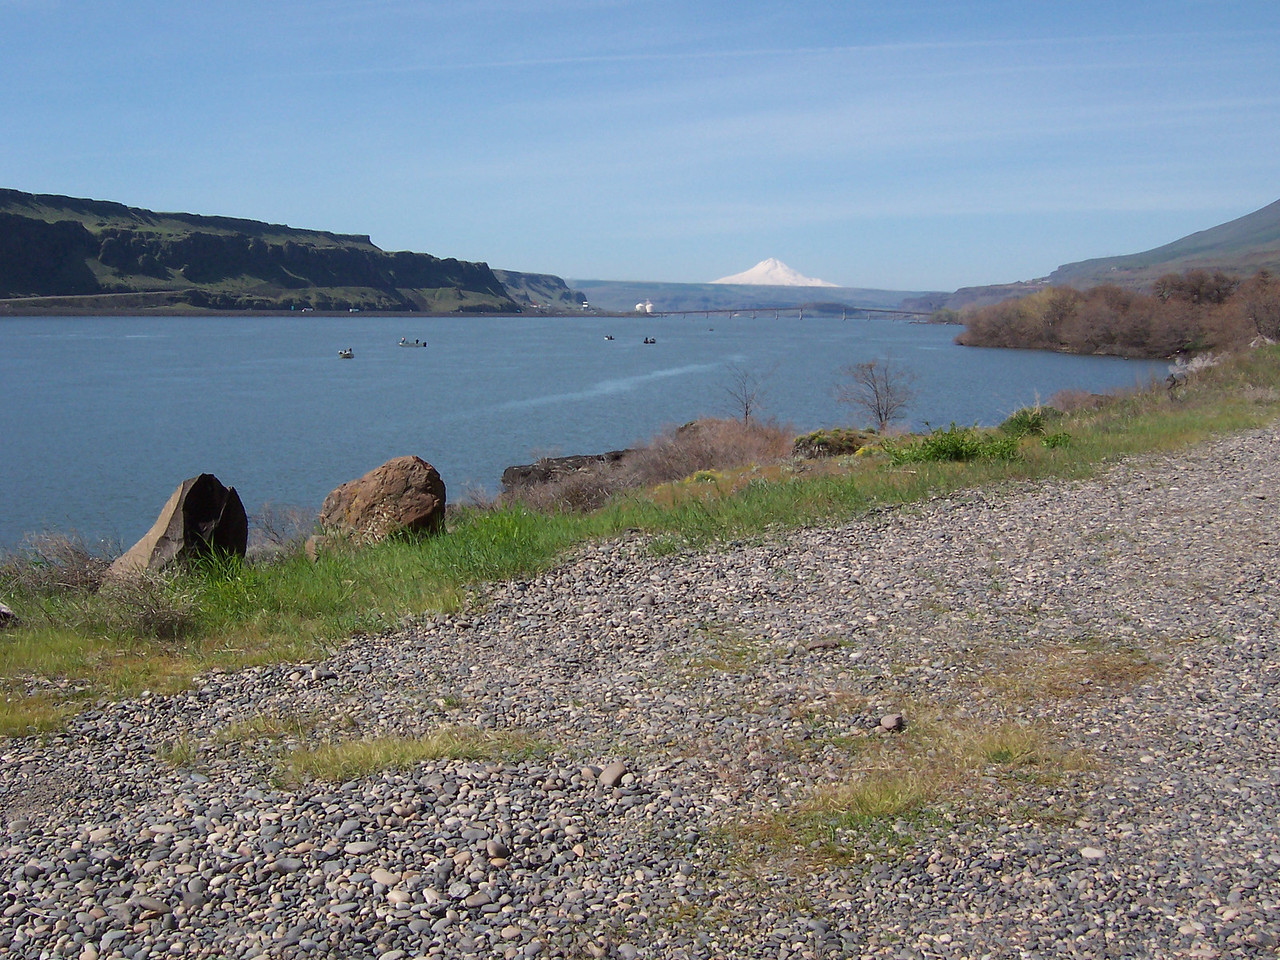 Sunday the 19th, We road a gravel Rd along the Columbia to John Day Dam. Mt Hood & fishermen